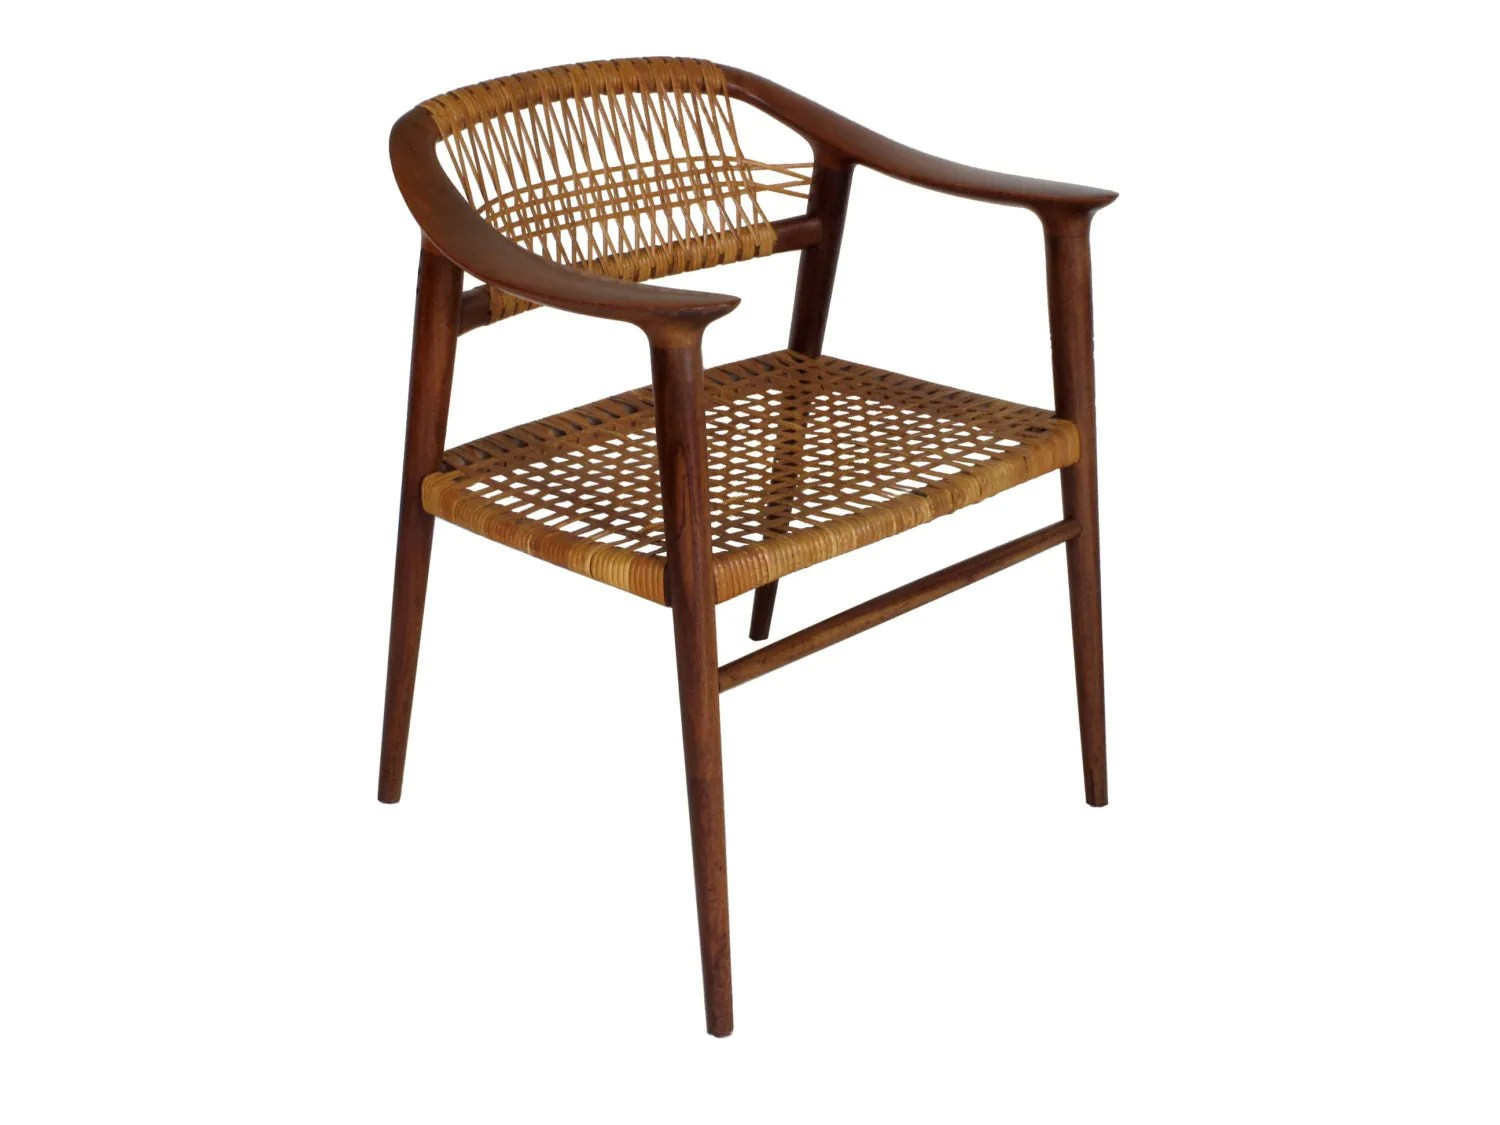 Cane Dining Chairs Bambi Teak And Cane Dining Chair By Rastad And Relling